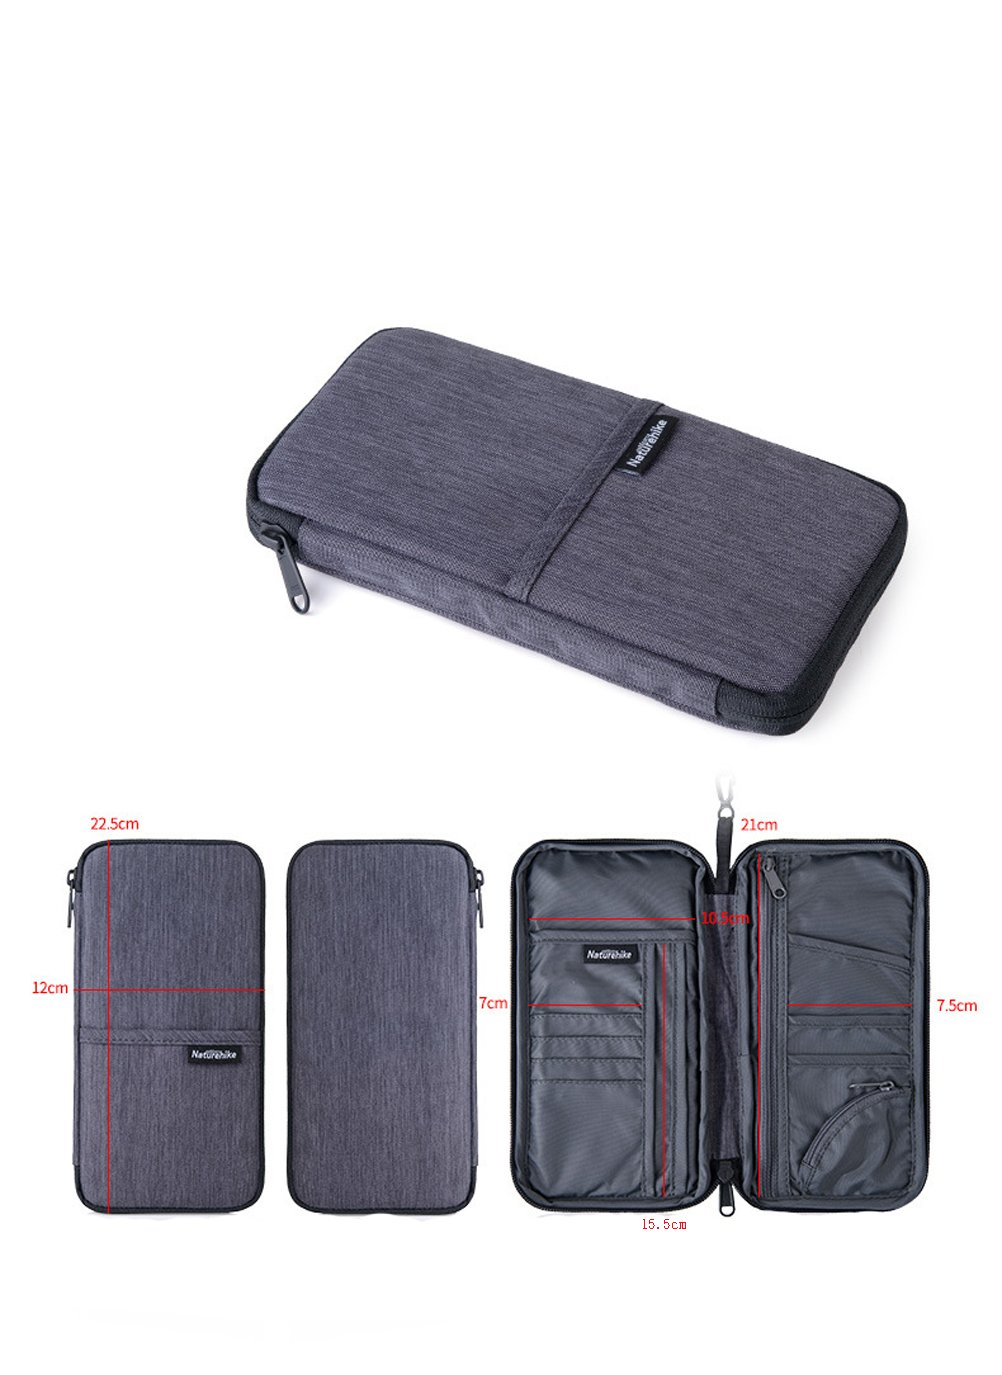 LOLPI Multi-function Wallets cash passport storage package gray